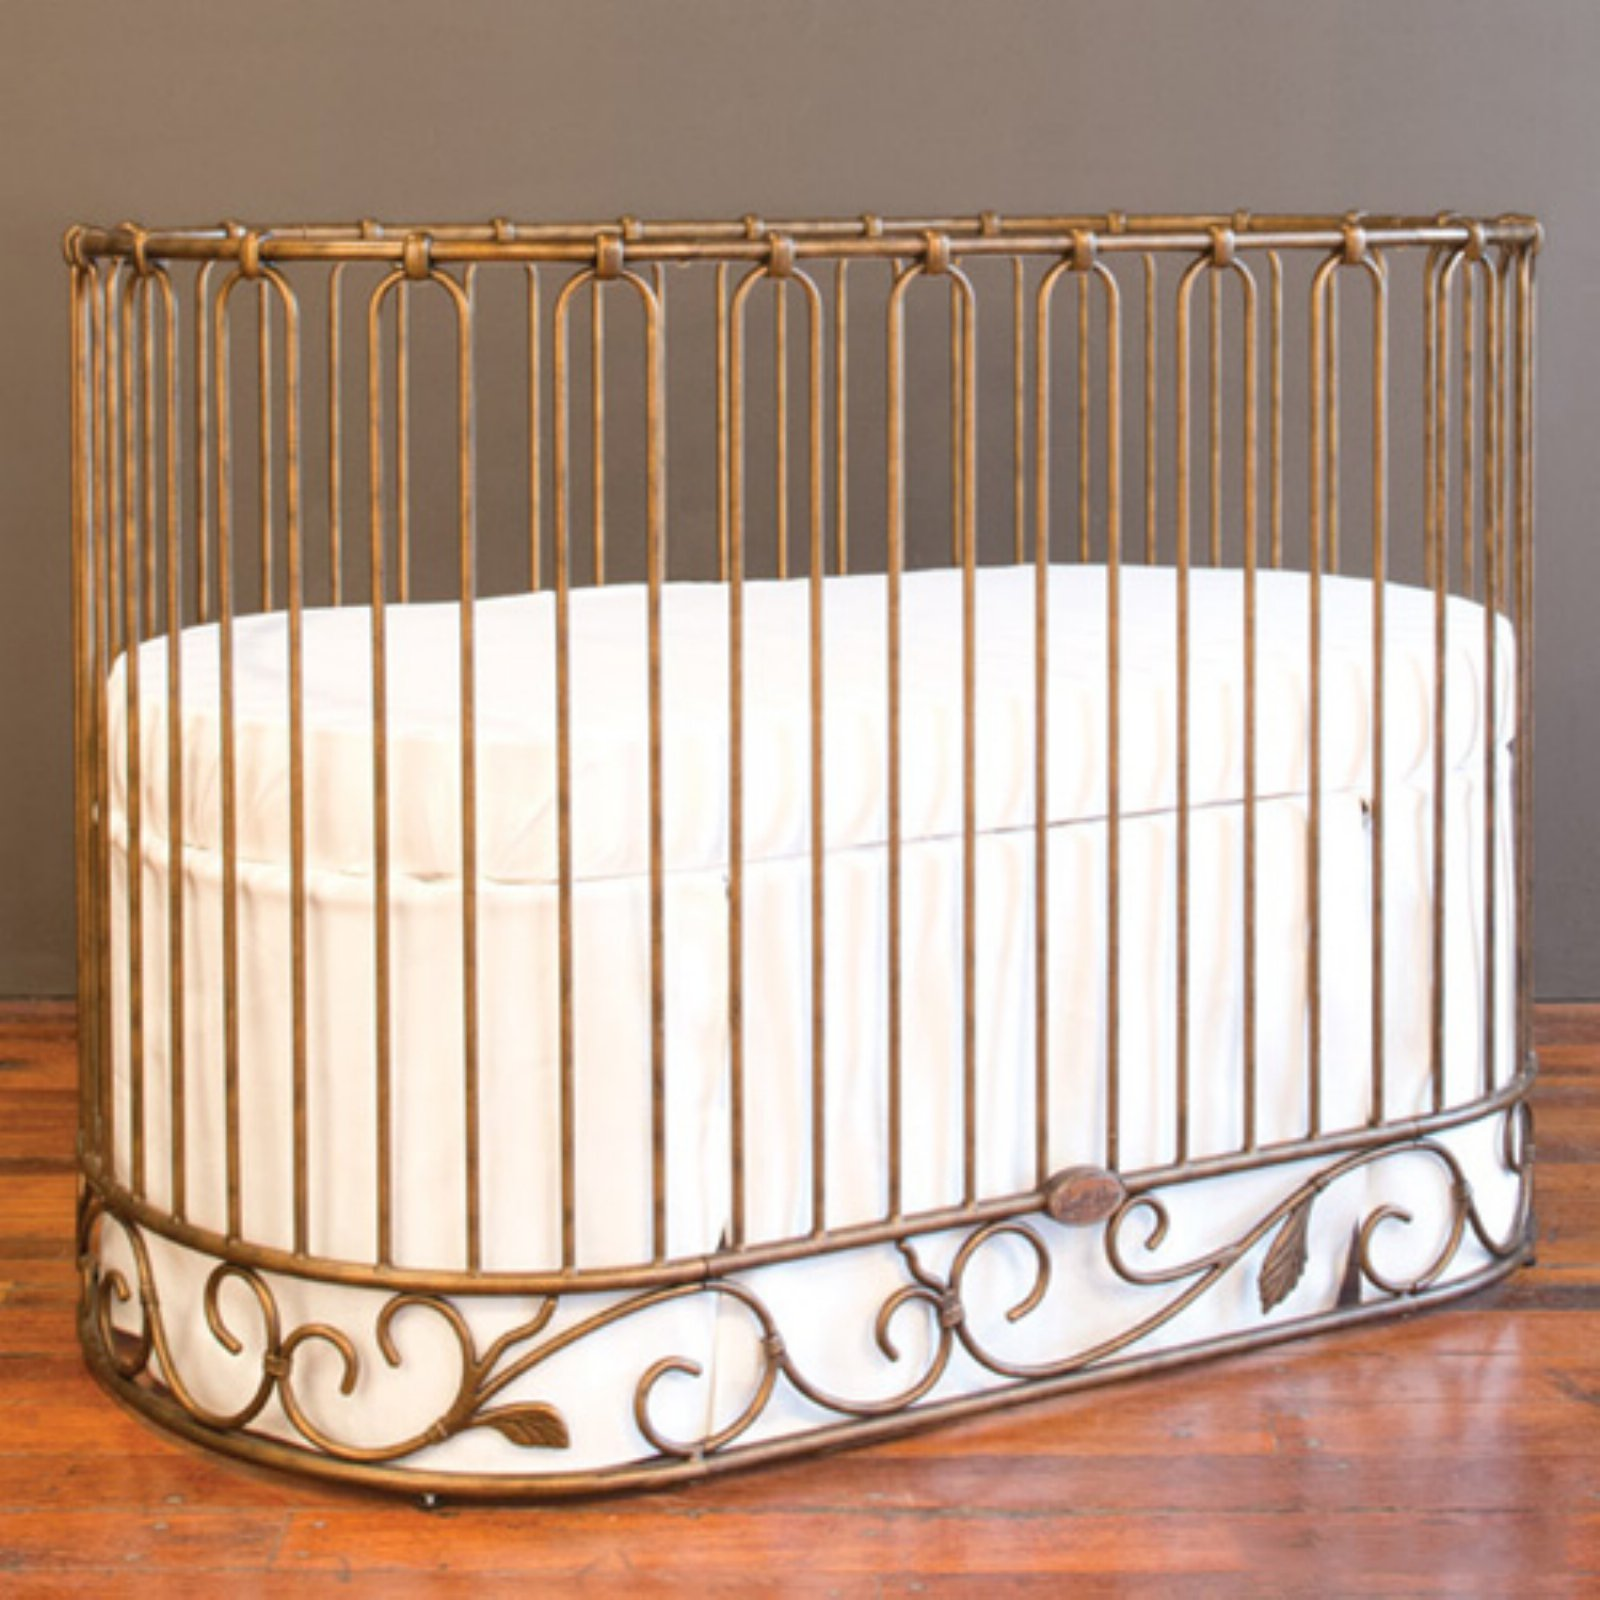 Bratt Decor Jadore 3-in-1 Crib